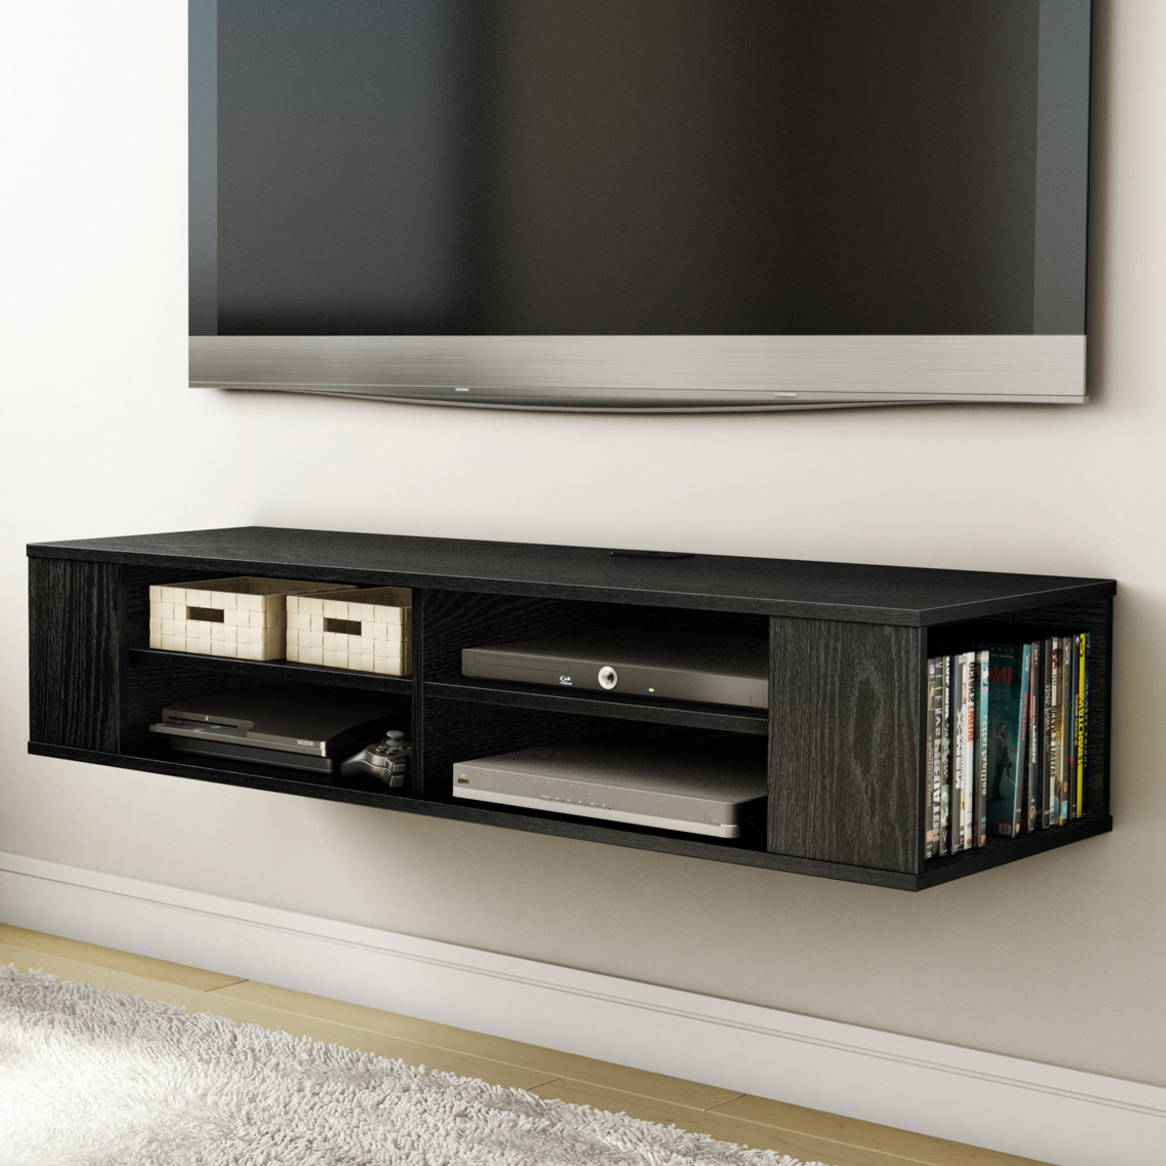 Console Tables Under Wall Mounted Tv Throughout Best And Newest Furniture For Under Mounted Tv (View 10 of 20)